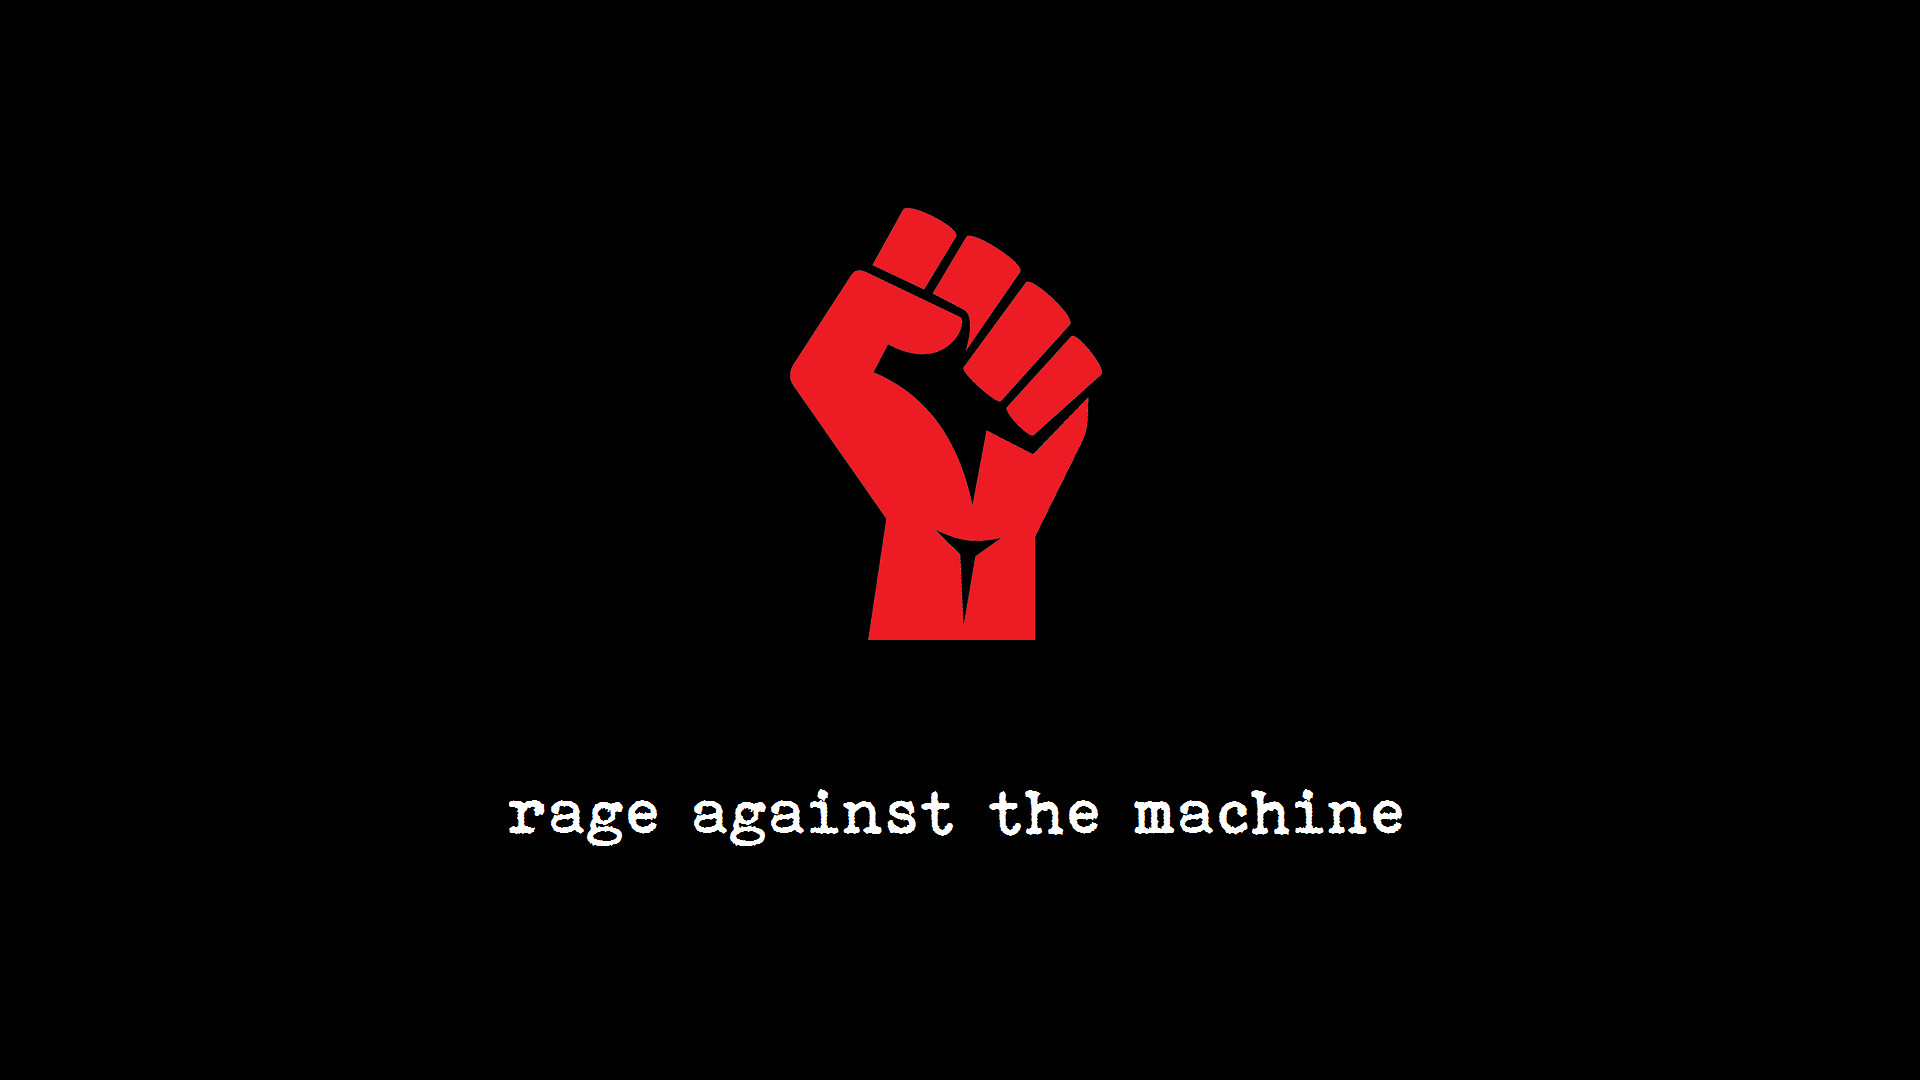 1920x1080 Music - Rage Against The Machine Fist Heavy Metal Music Wallpaper